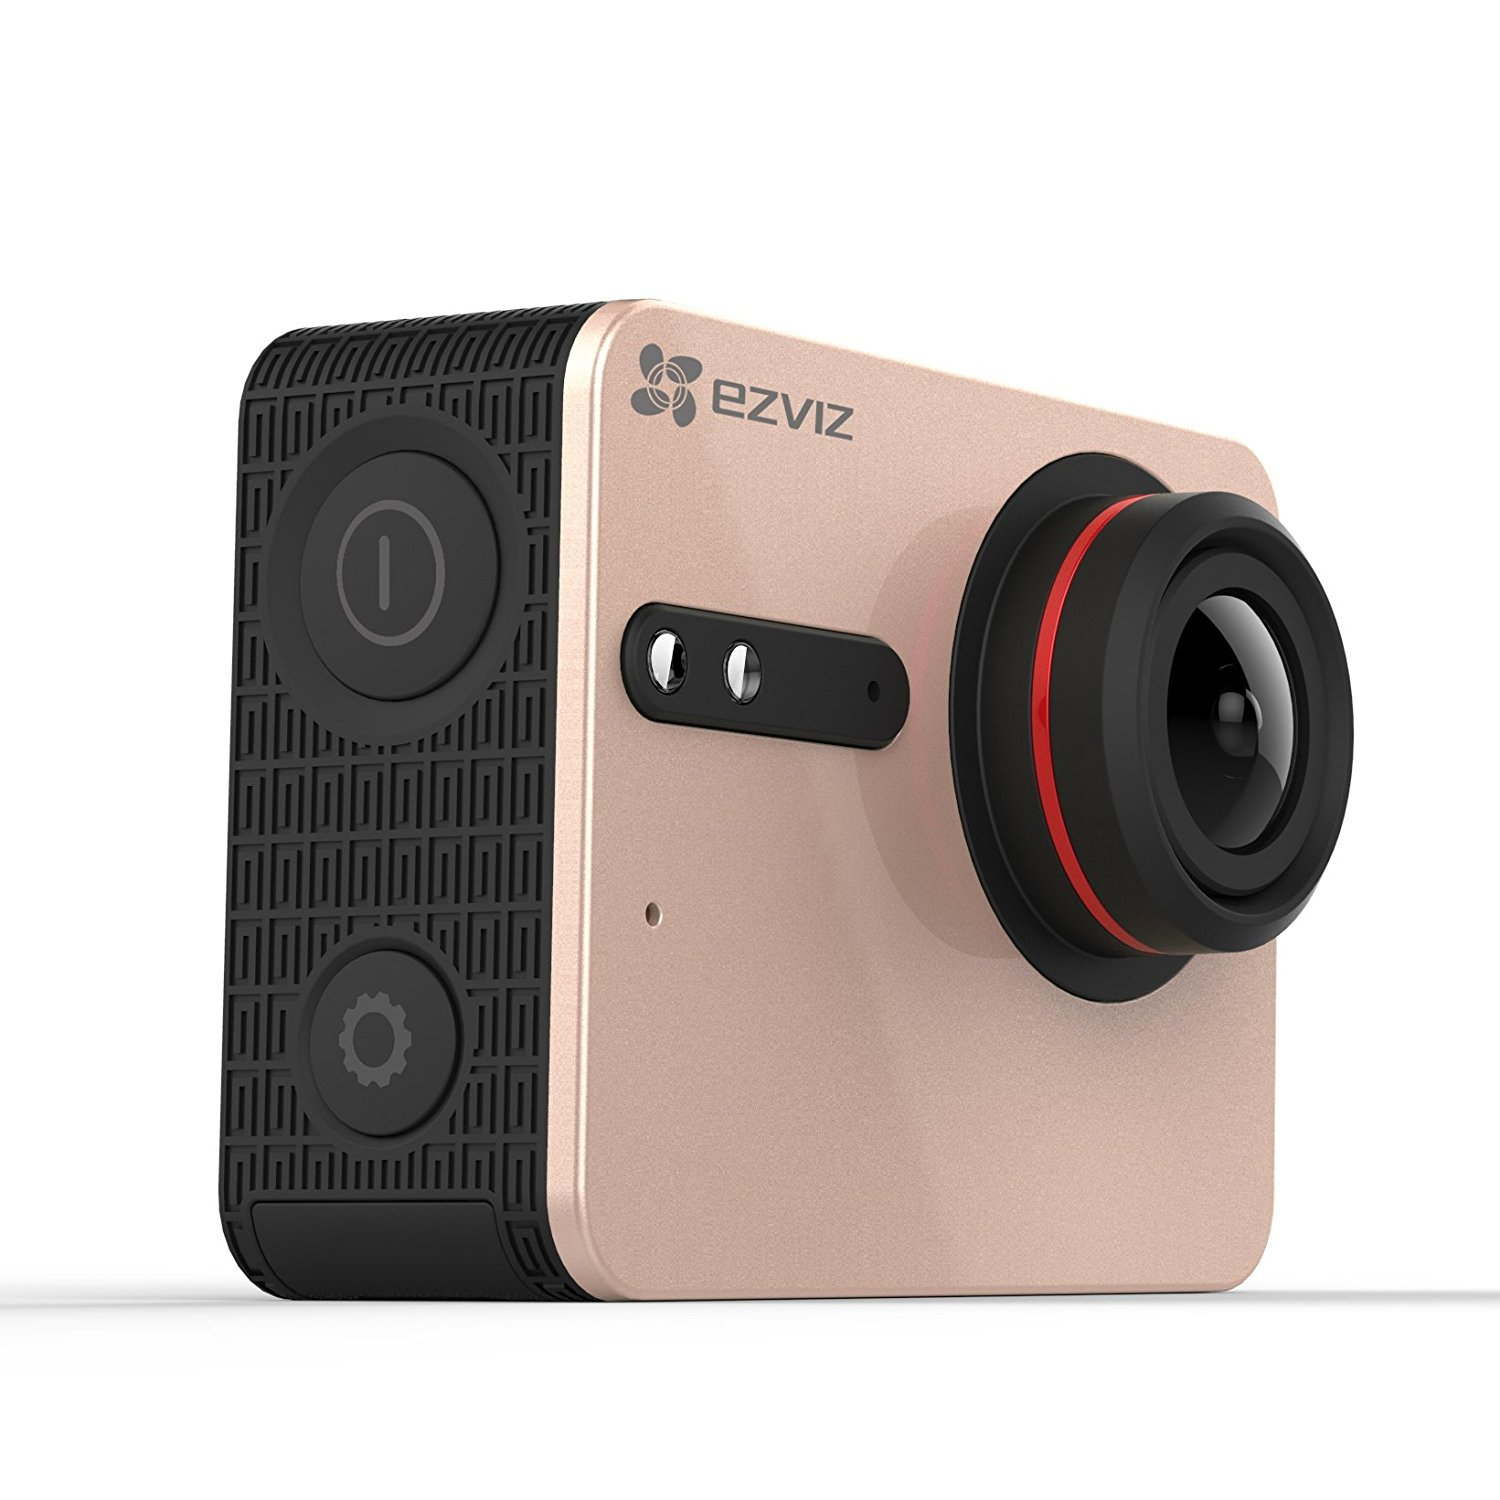 EZVIZ FIVE PLUS 4K Action Camera with Touchscreen - Amber Gold [並行輸入品]   B01N2NONTW